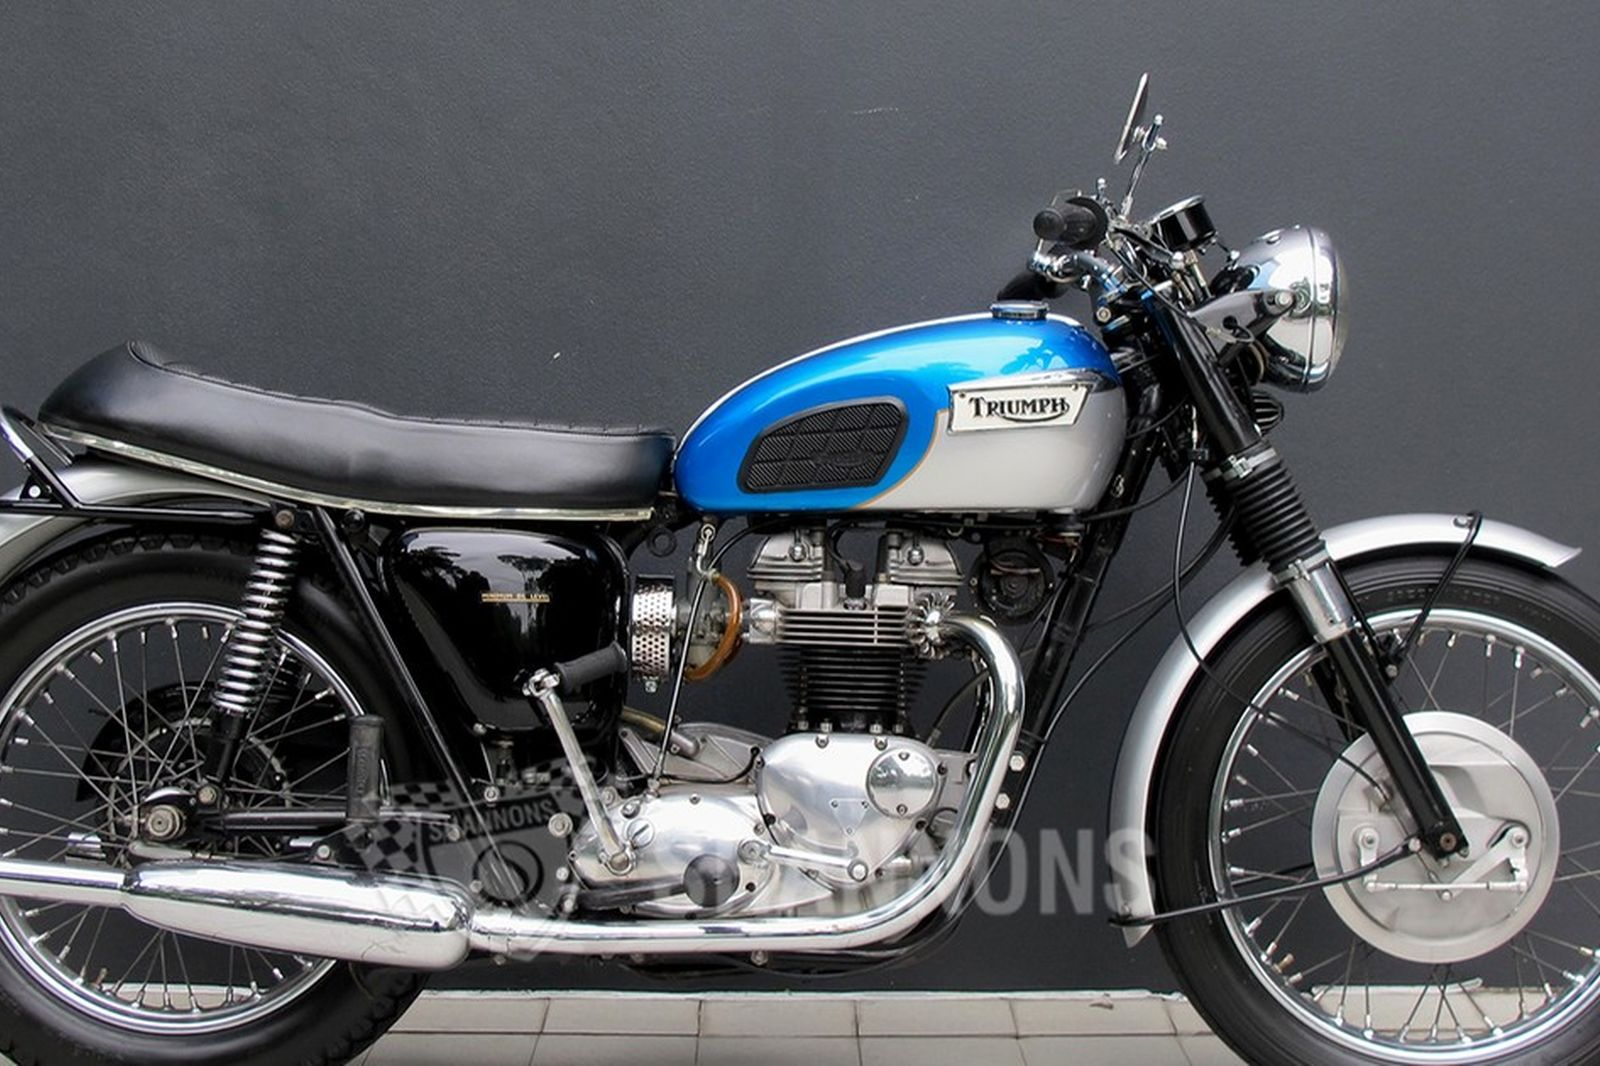 Sold Triumph Tr6 Tiger 650cc Motorcycle Auctions Lot Ai Shannons